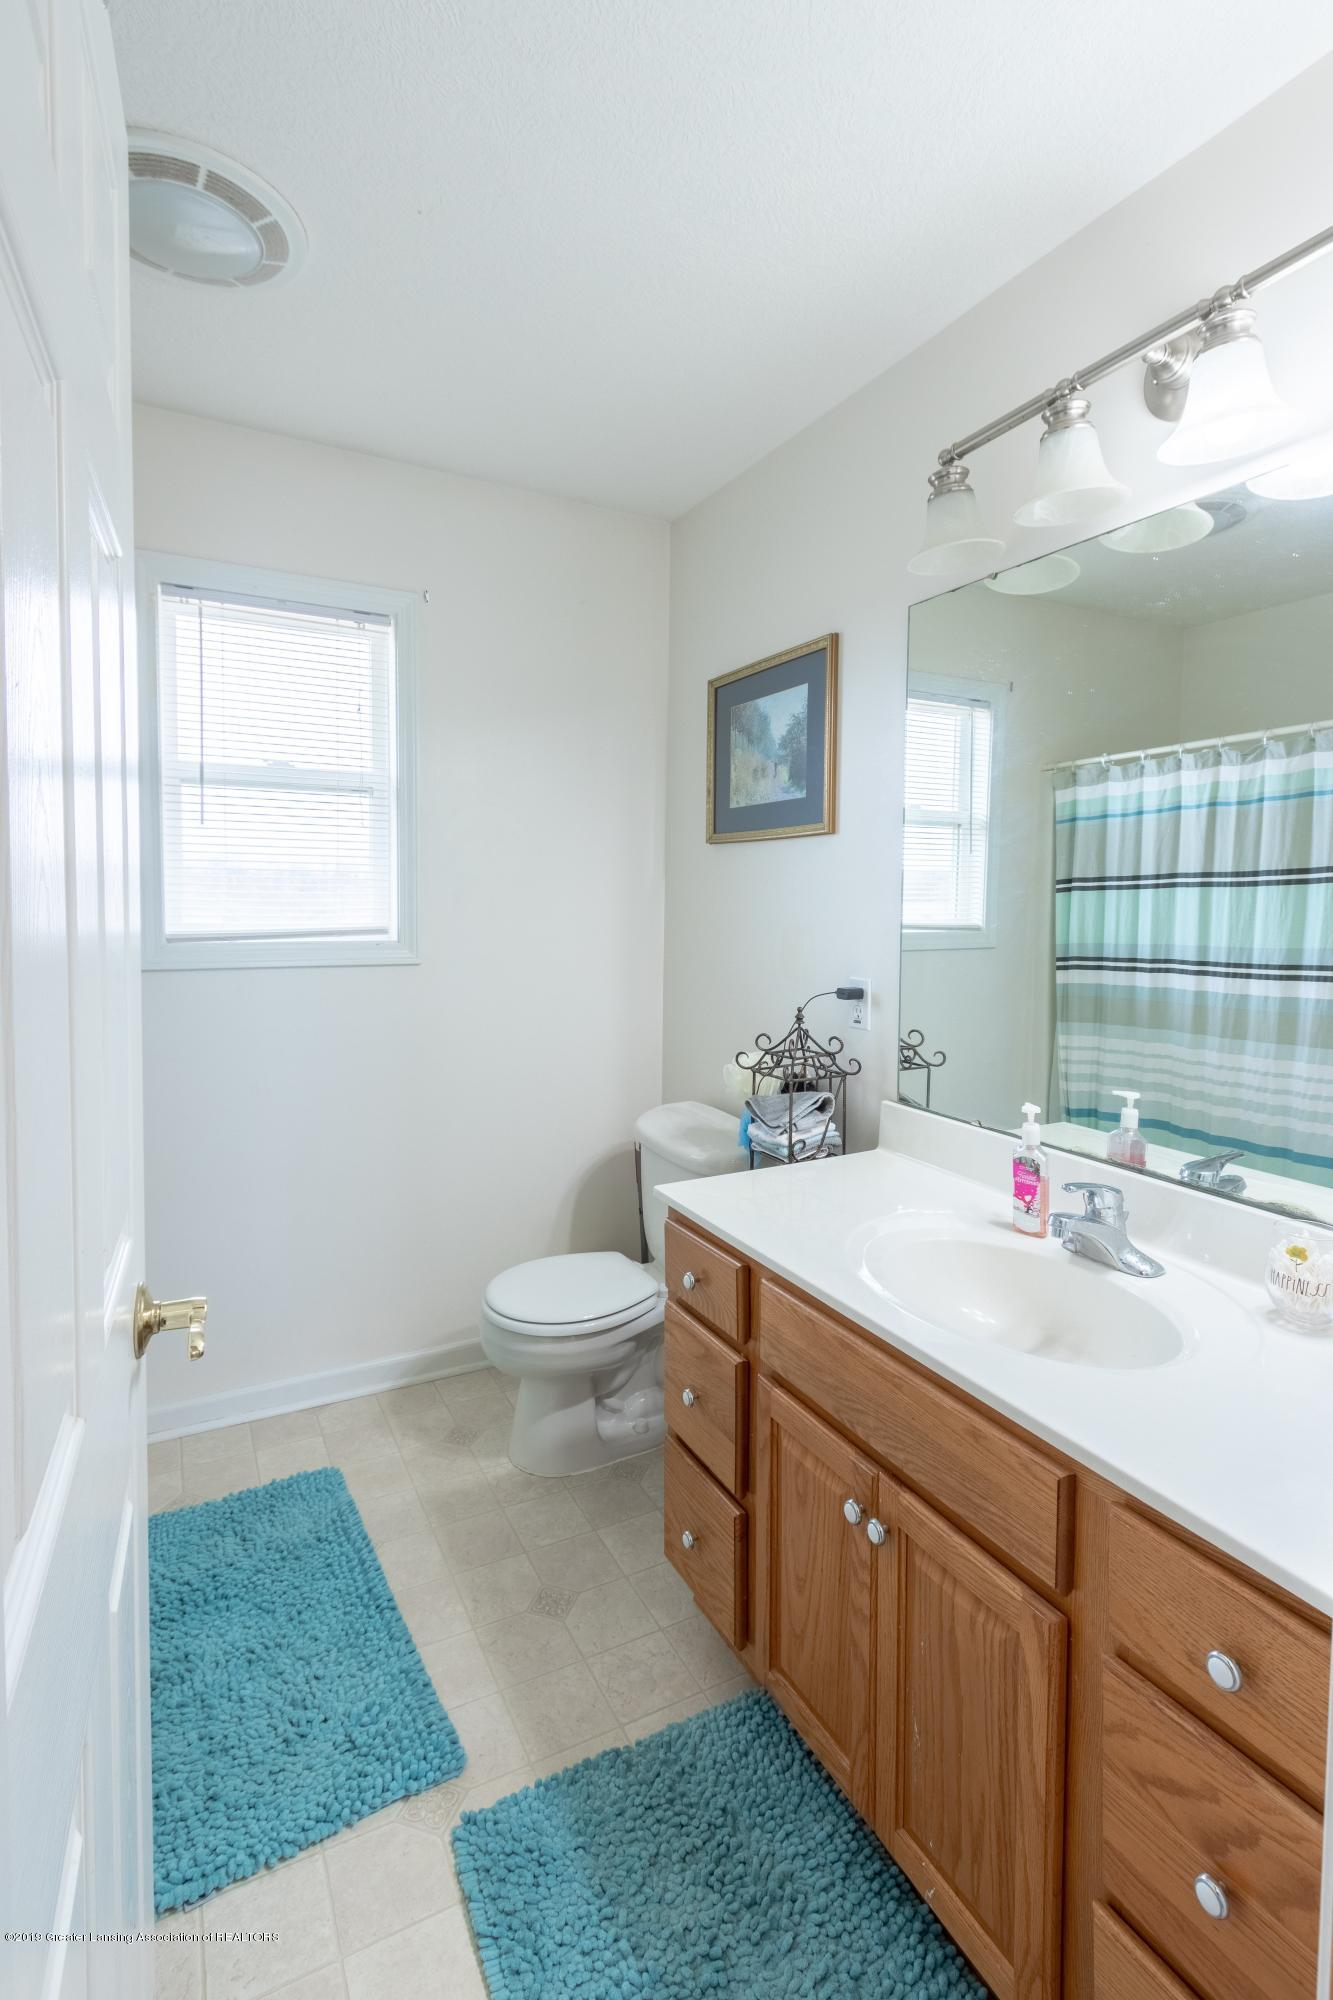 6121 W Centerline Rd - Full Bathroom - 24